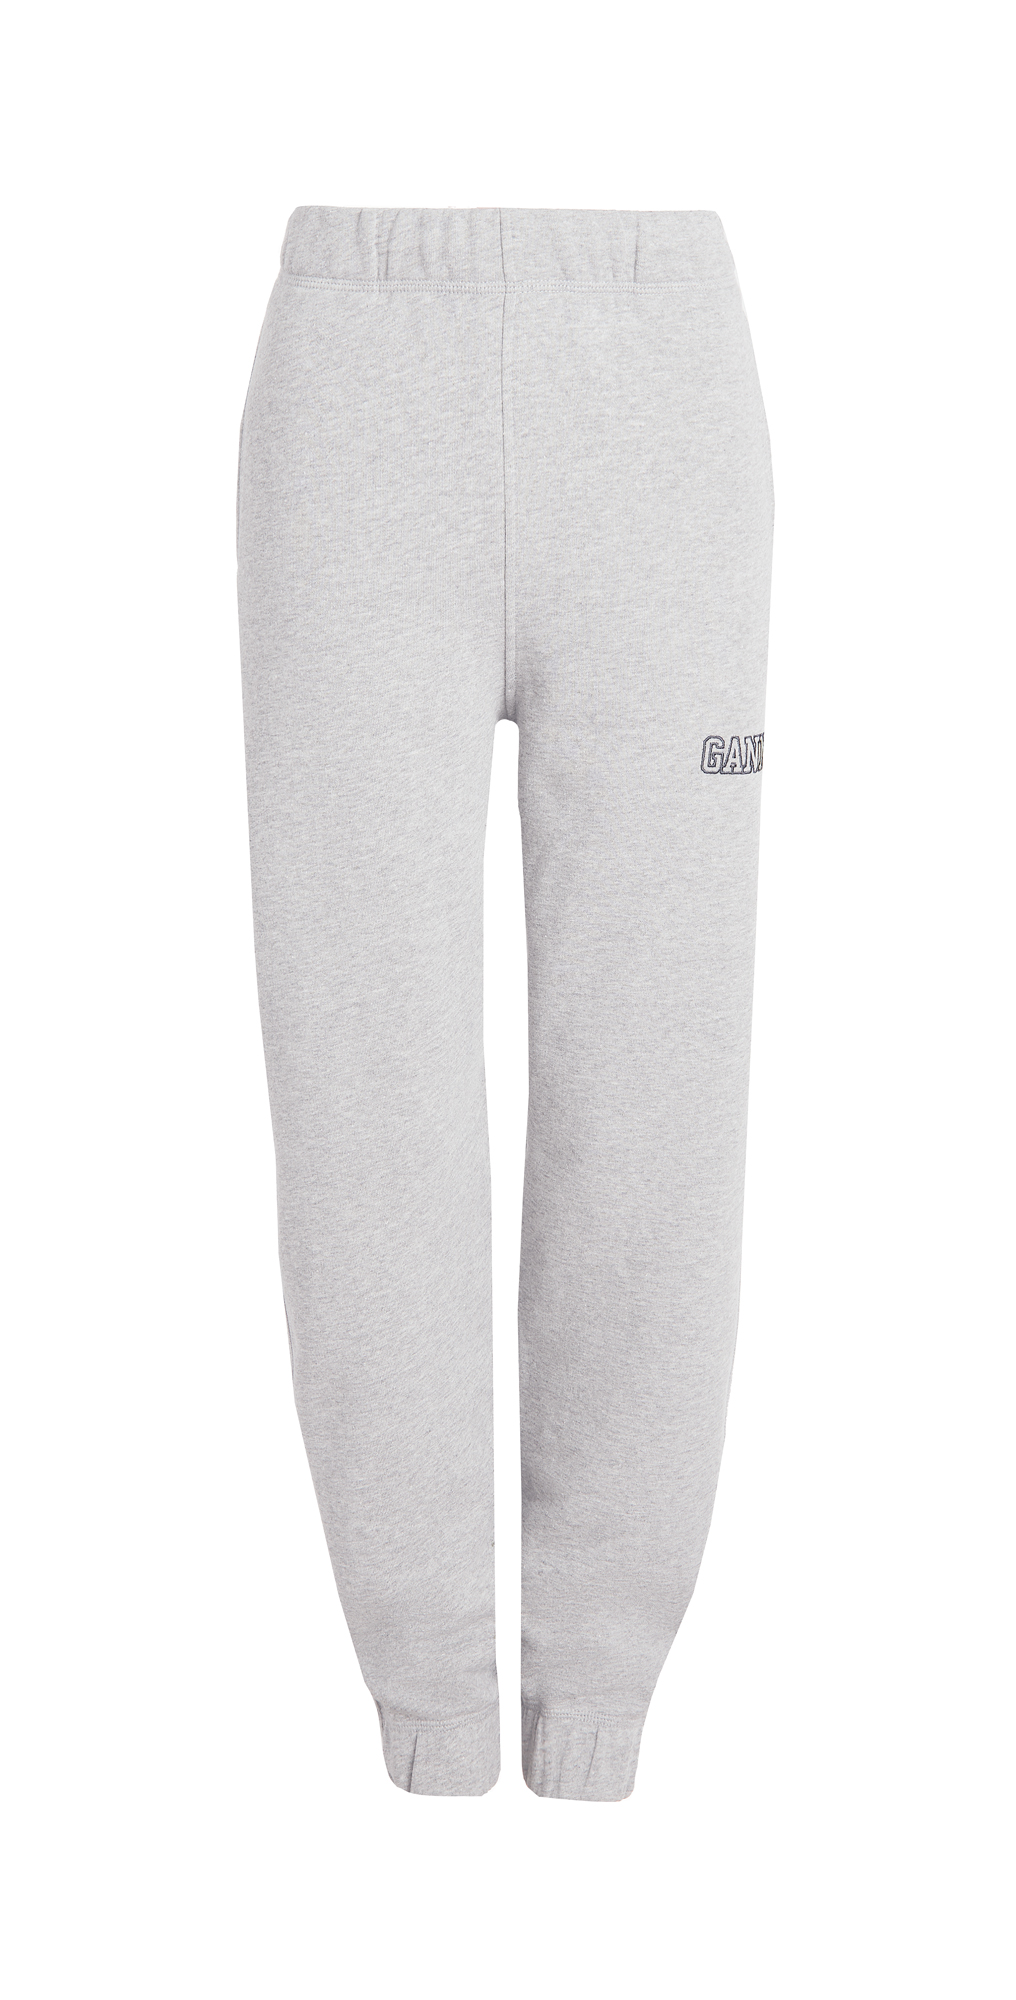 GANNI Software Isoli Sweatpants